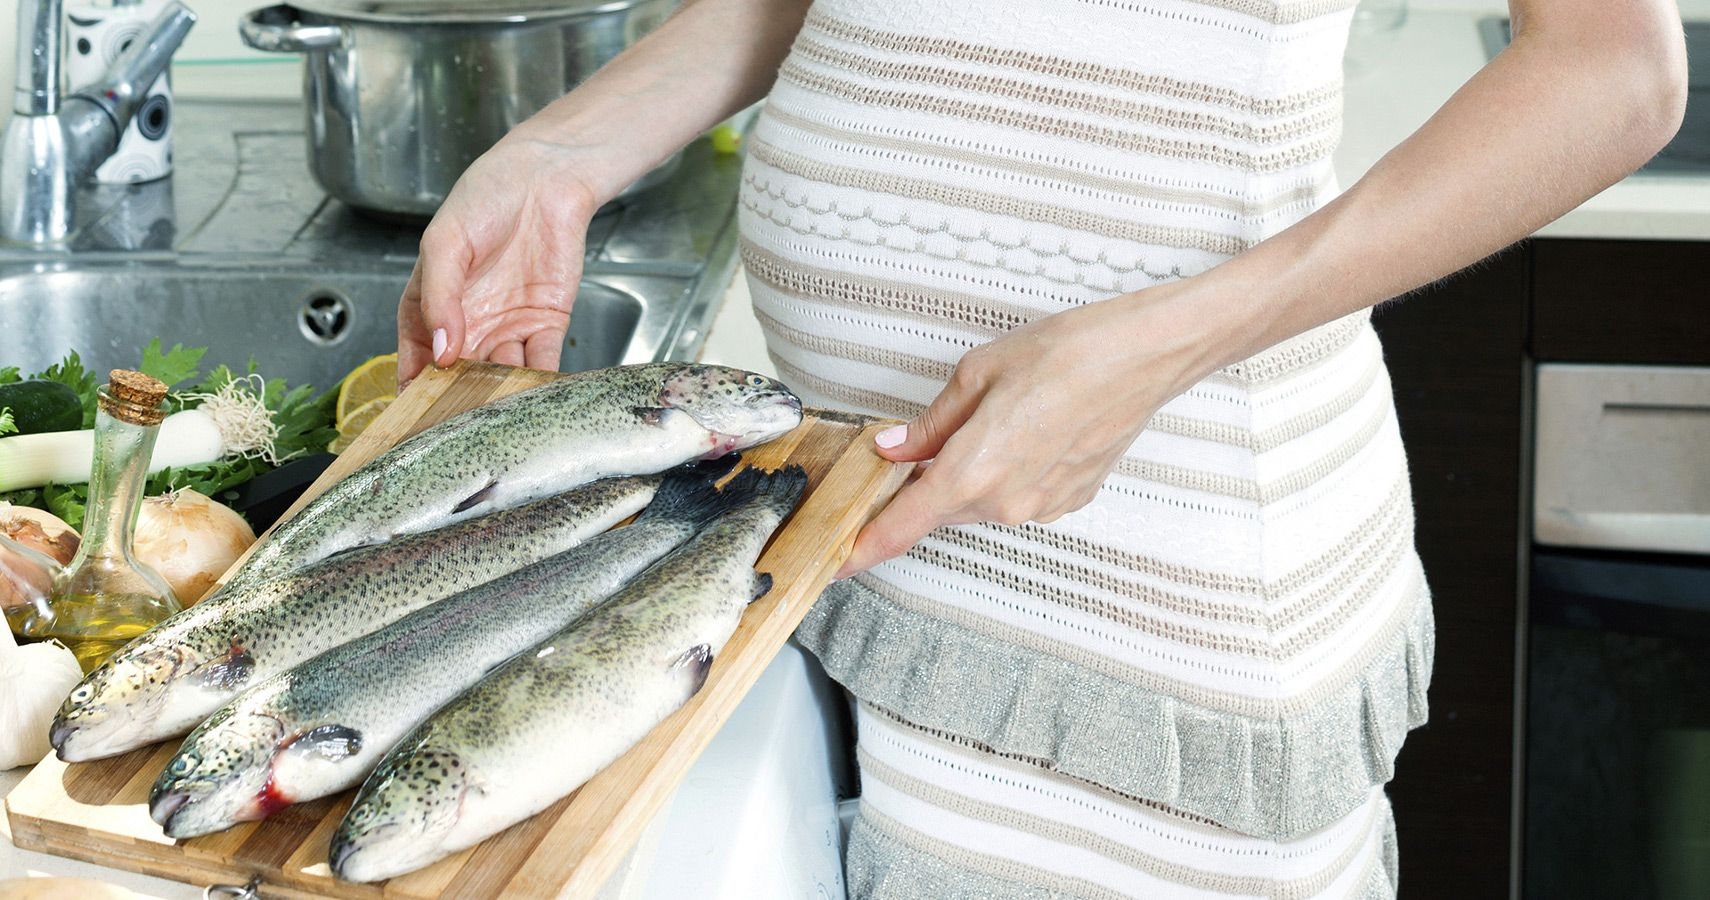 consuming seafood during pregnancy can improve children's